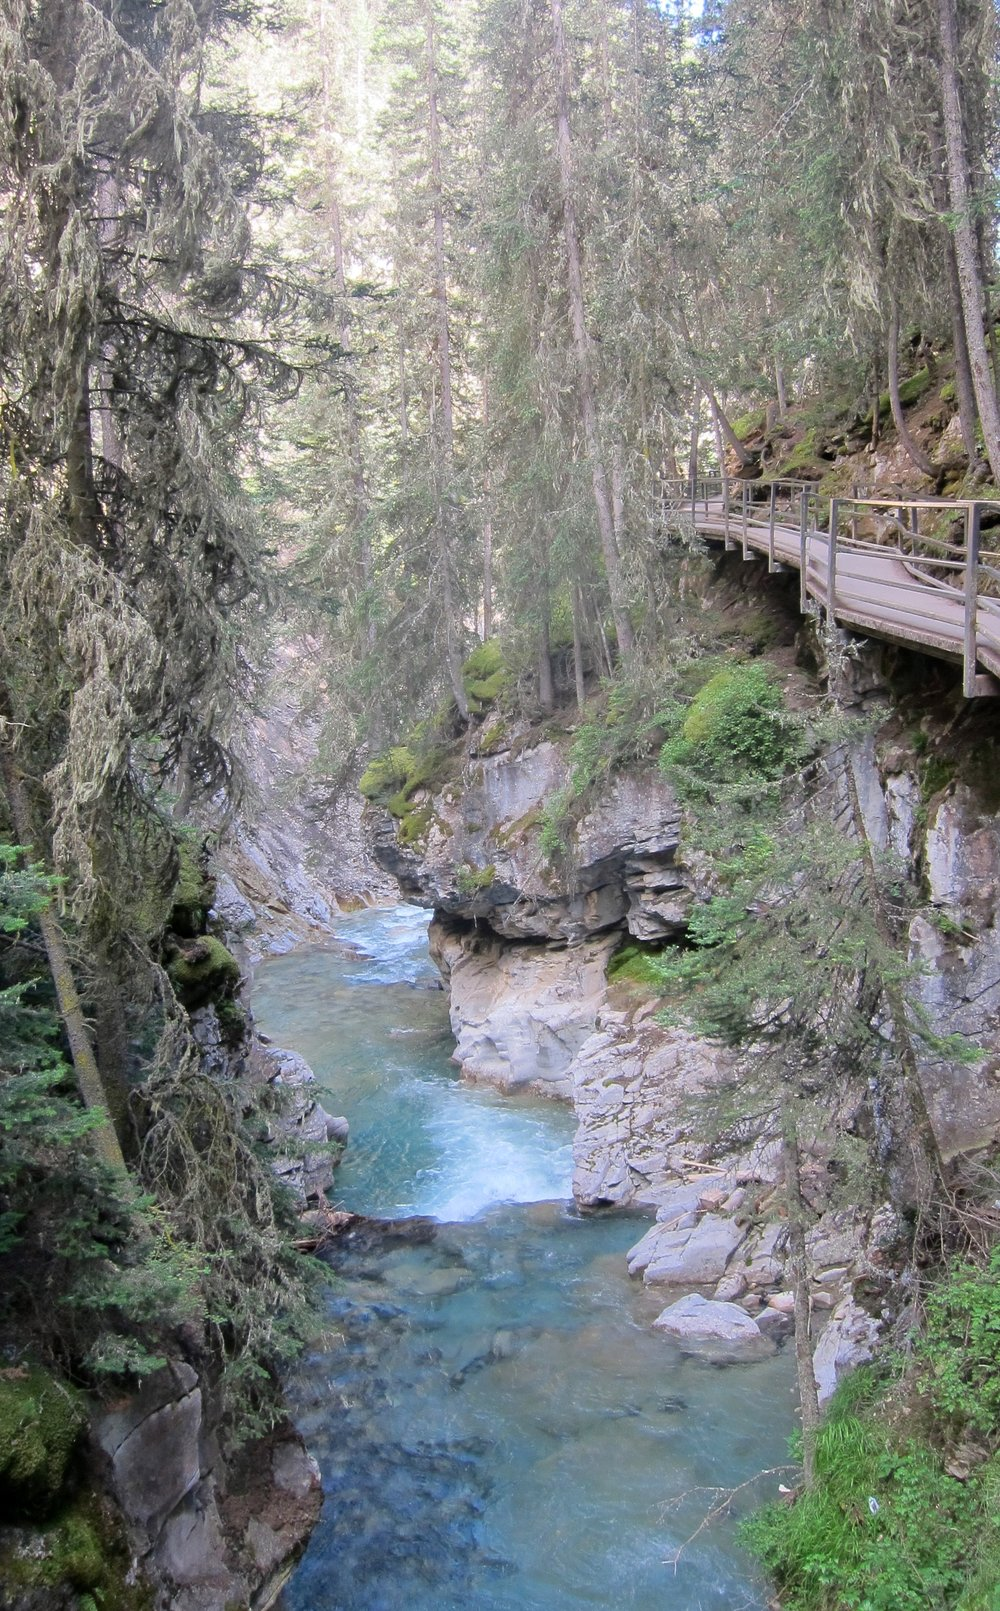 Johnston Canyon hike along the catwalk. This hike gets super crowded so go really early or really late in the day.